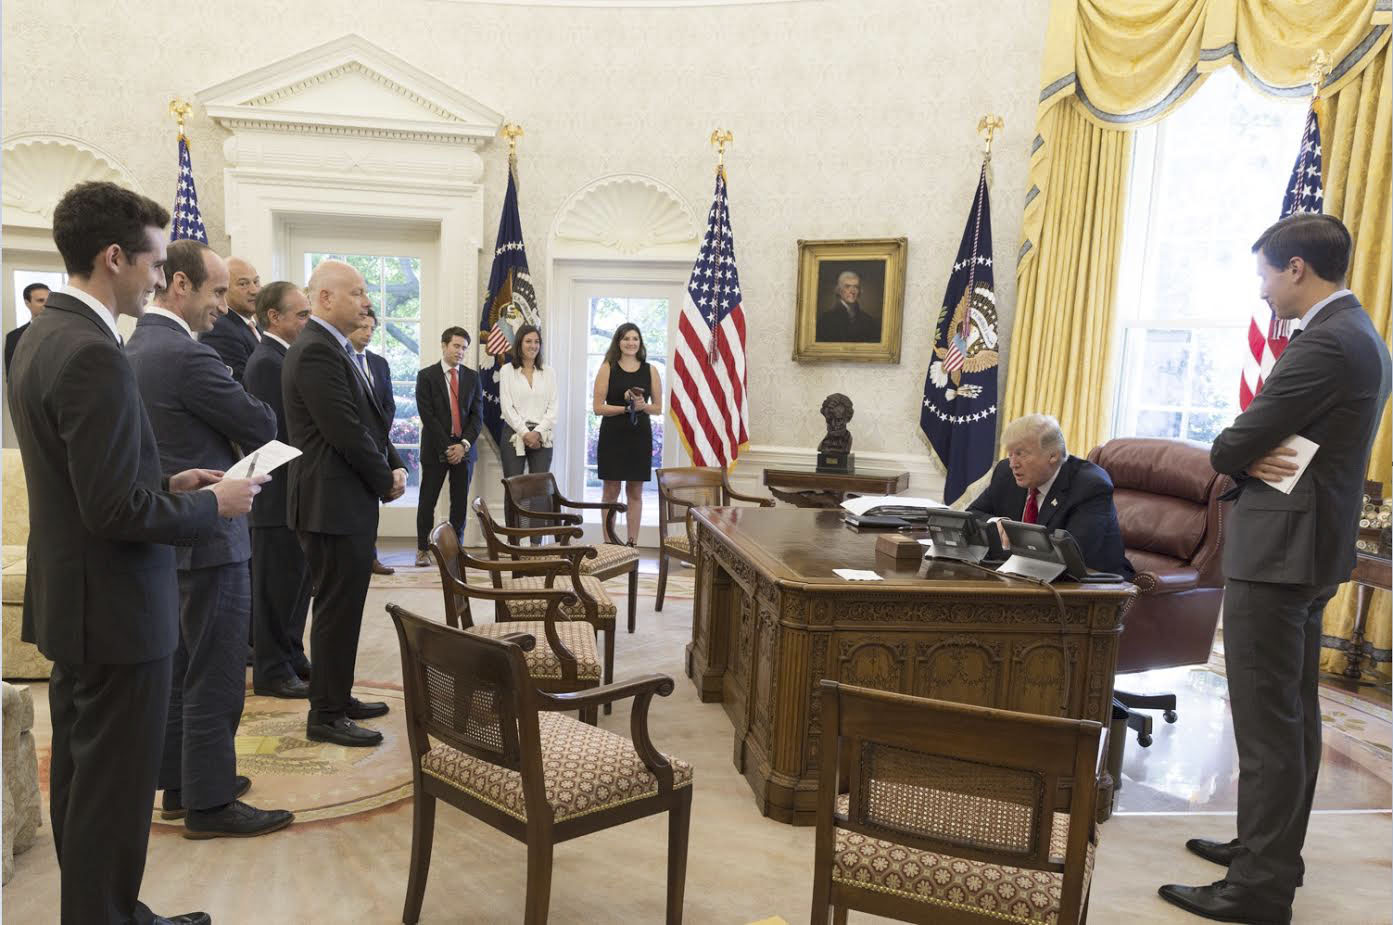 President Donald Trump speaking to Jewish leaders in a conference call at the White House as staffers look on, Sept. 15, 2017. (Photo/JTA-White House Press Office)